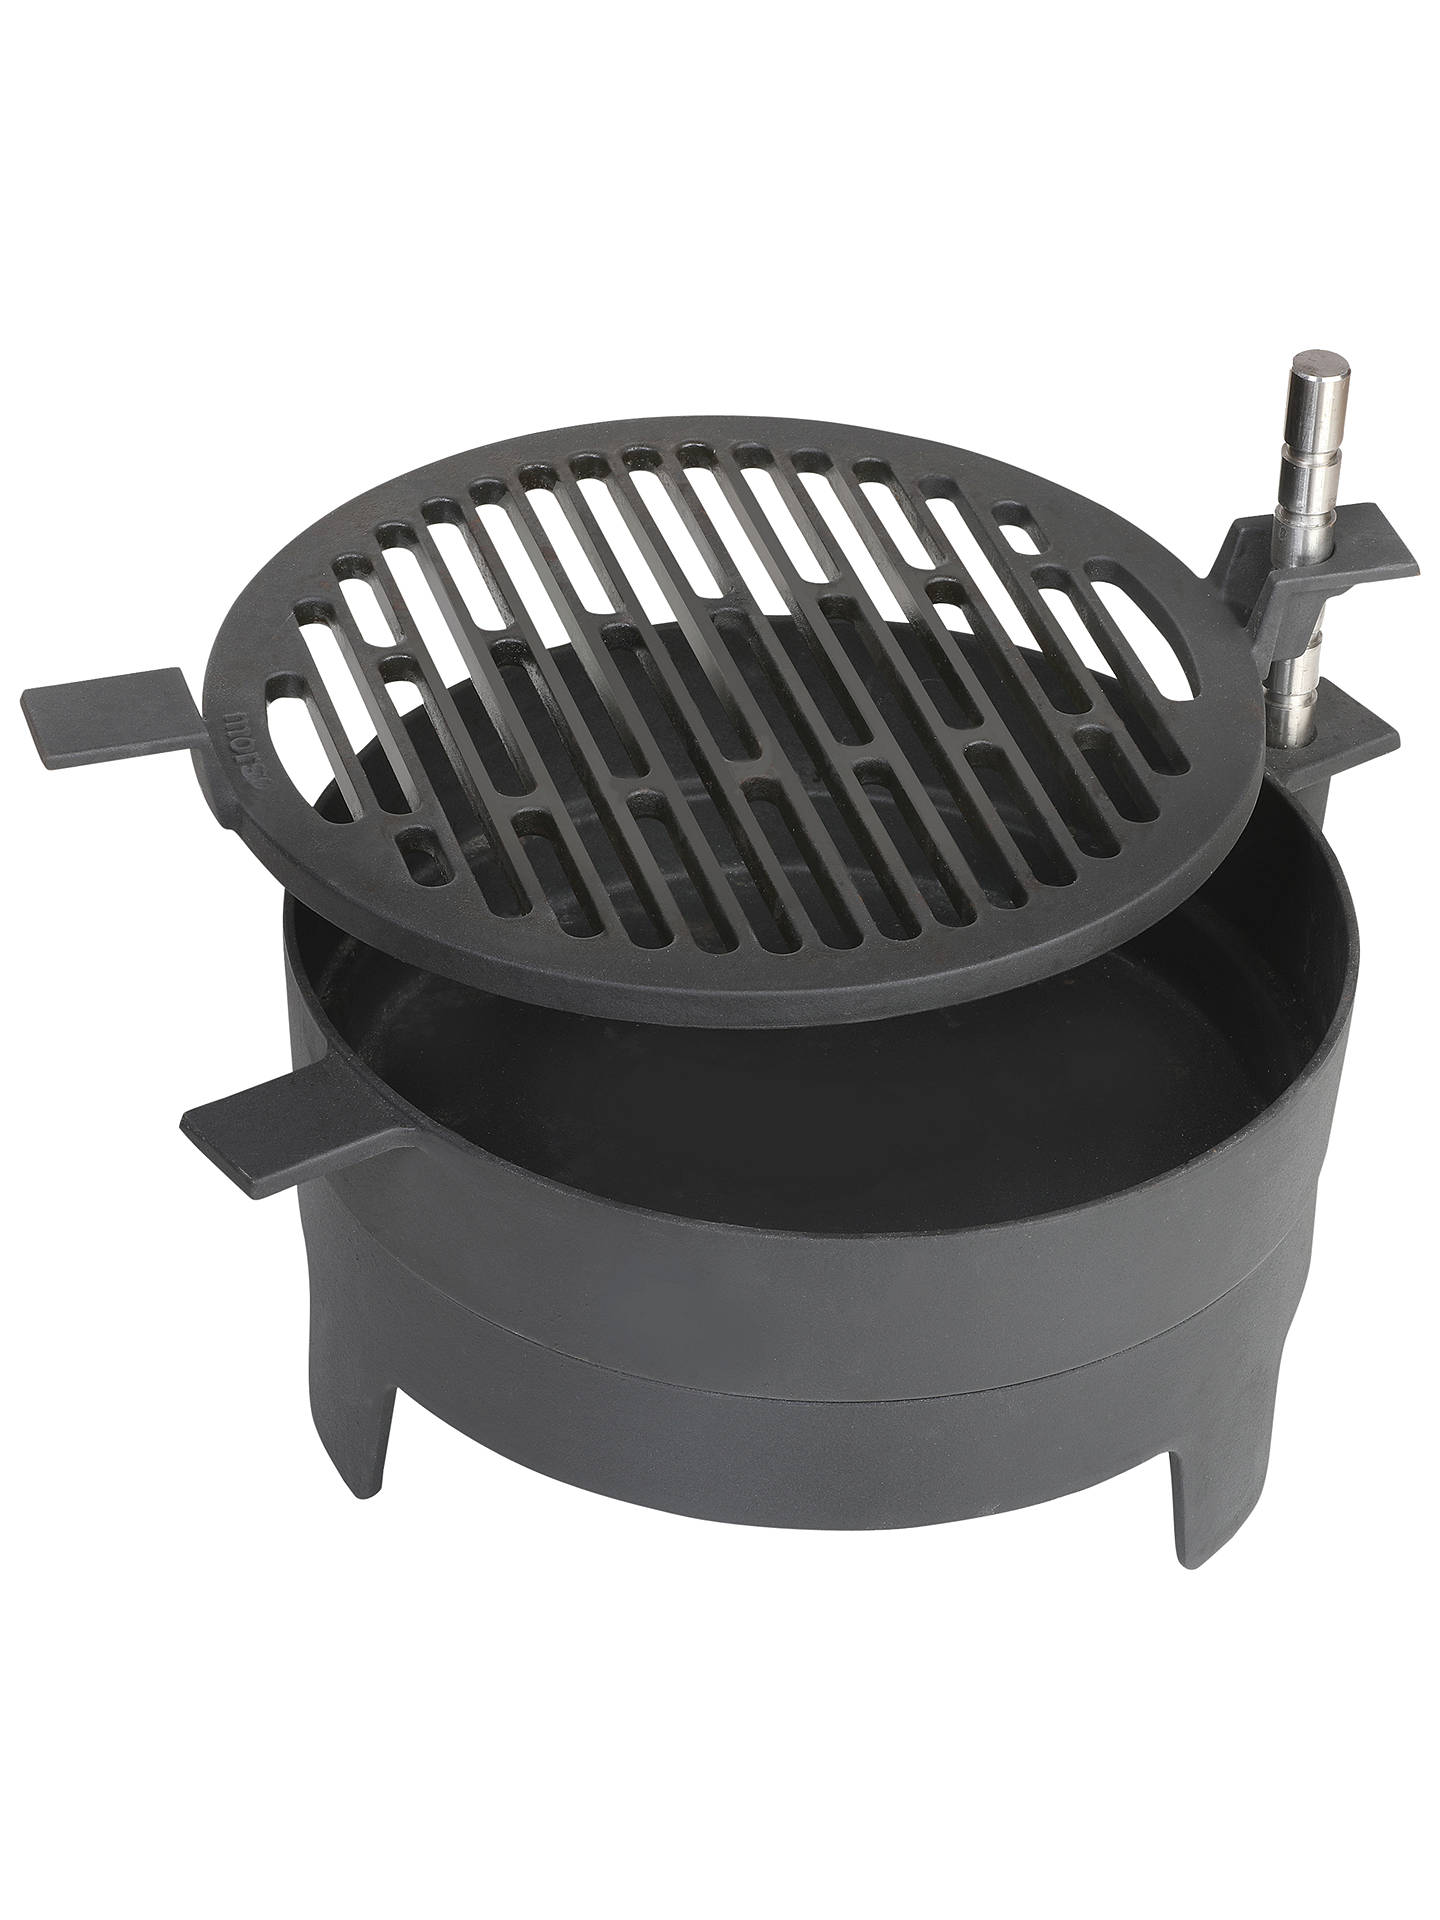 Morsø Tabletop Charcoal Grill Black At